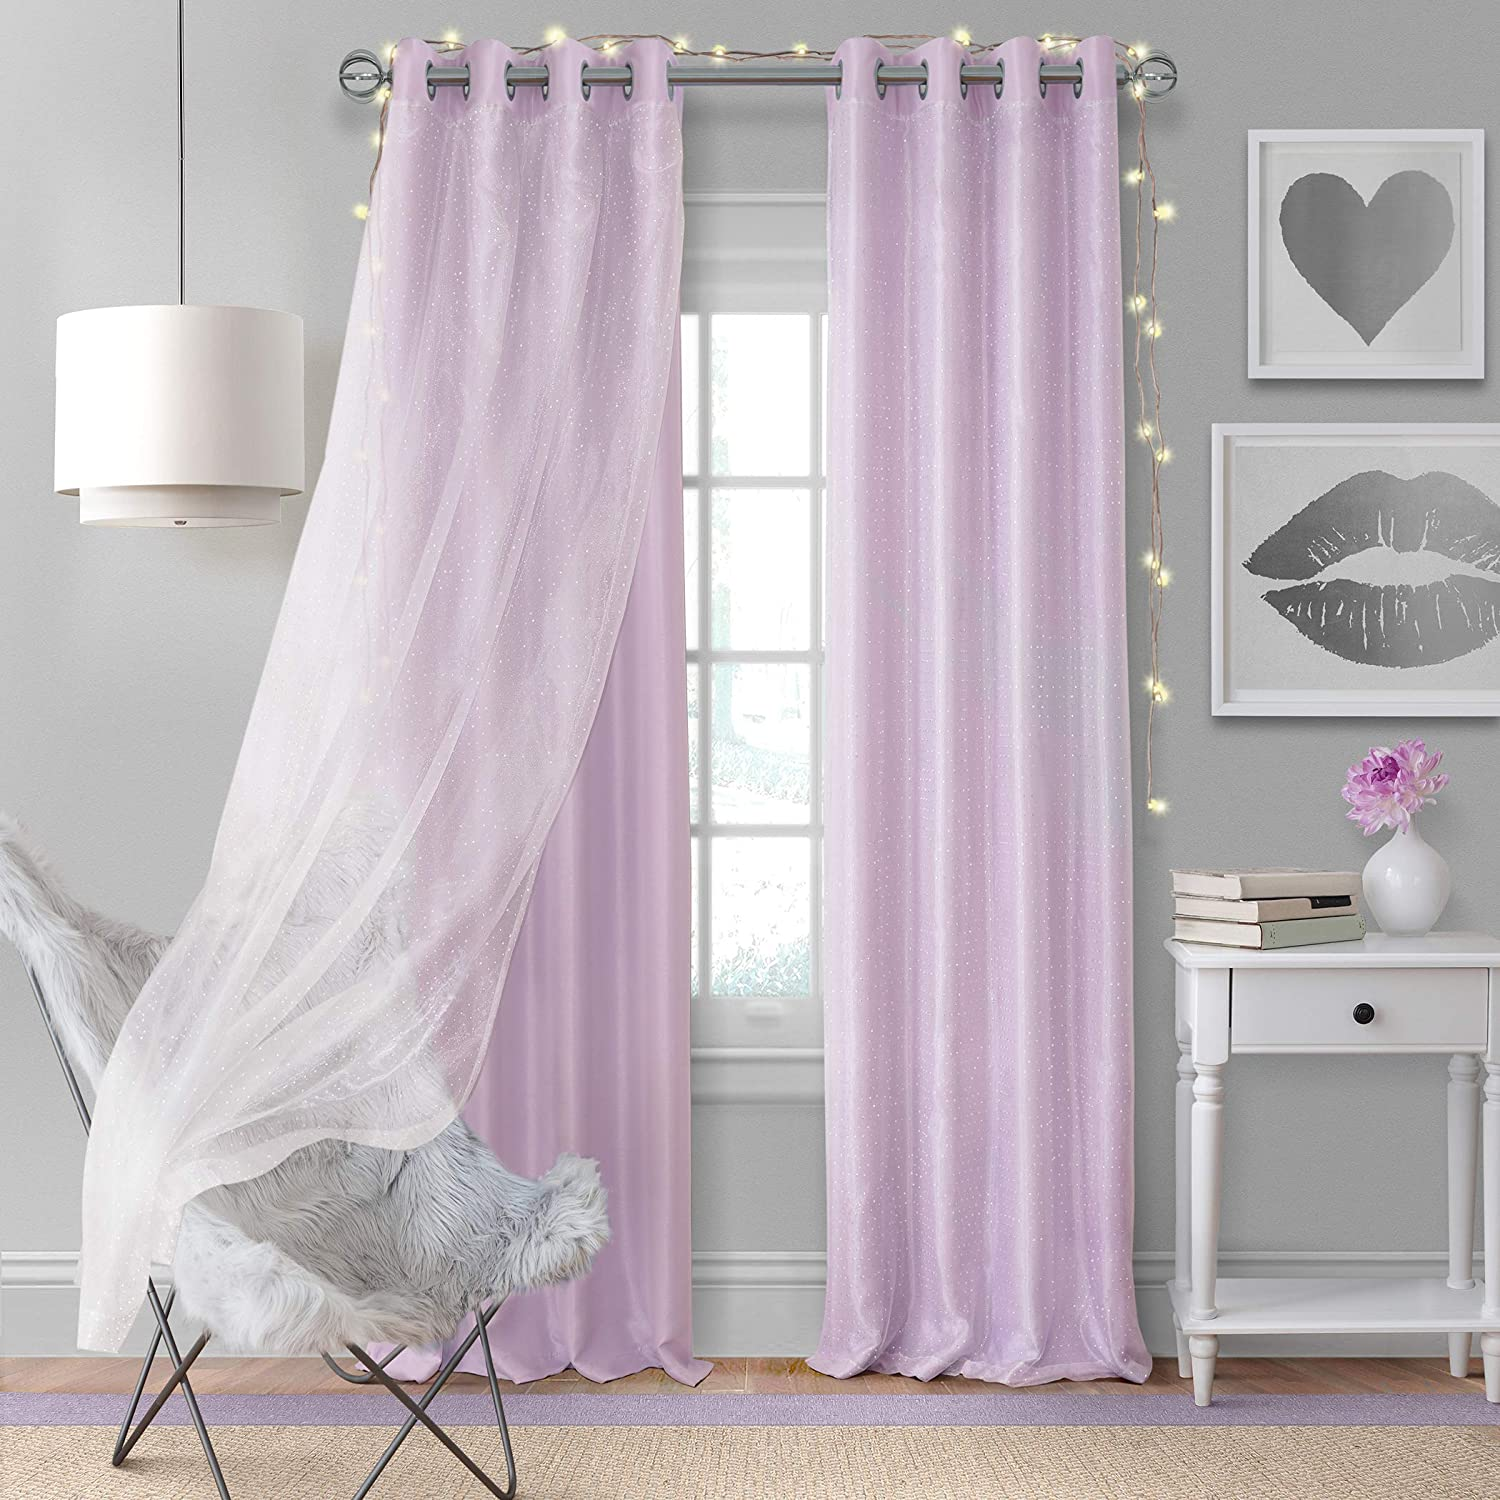 "Elrene Home Fashions Aurora Solid Faux Silk with Sheer Sparkle Overlay Room Darkening Window Curtain Panel, 52"" W x 95"" L (1, Lavender"